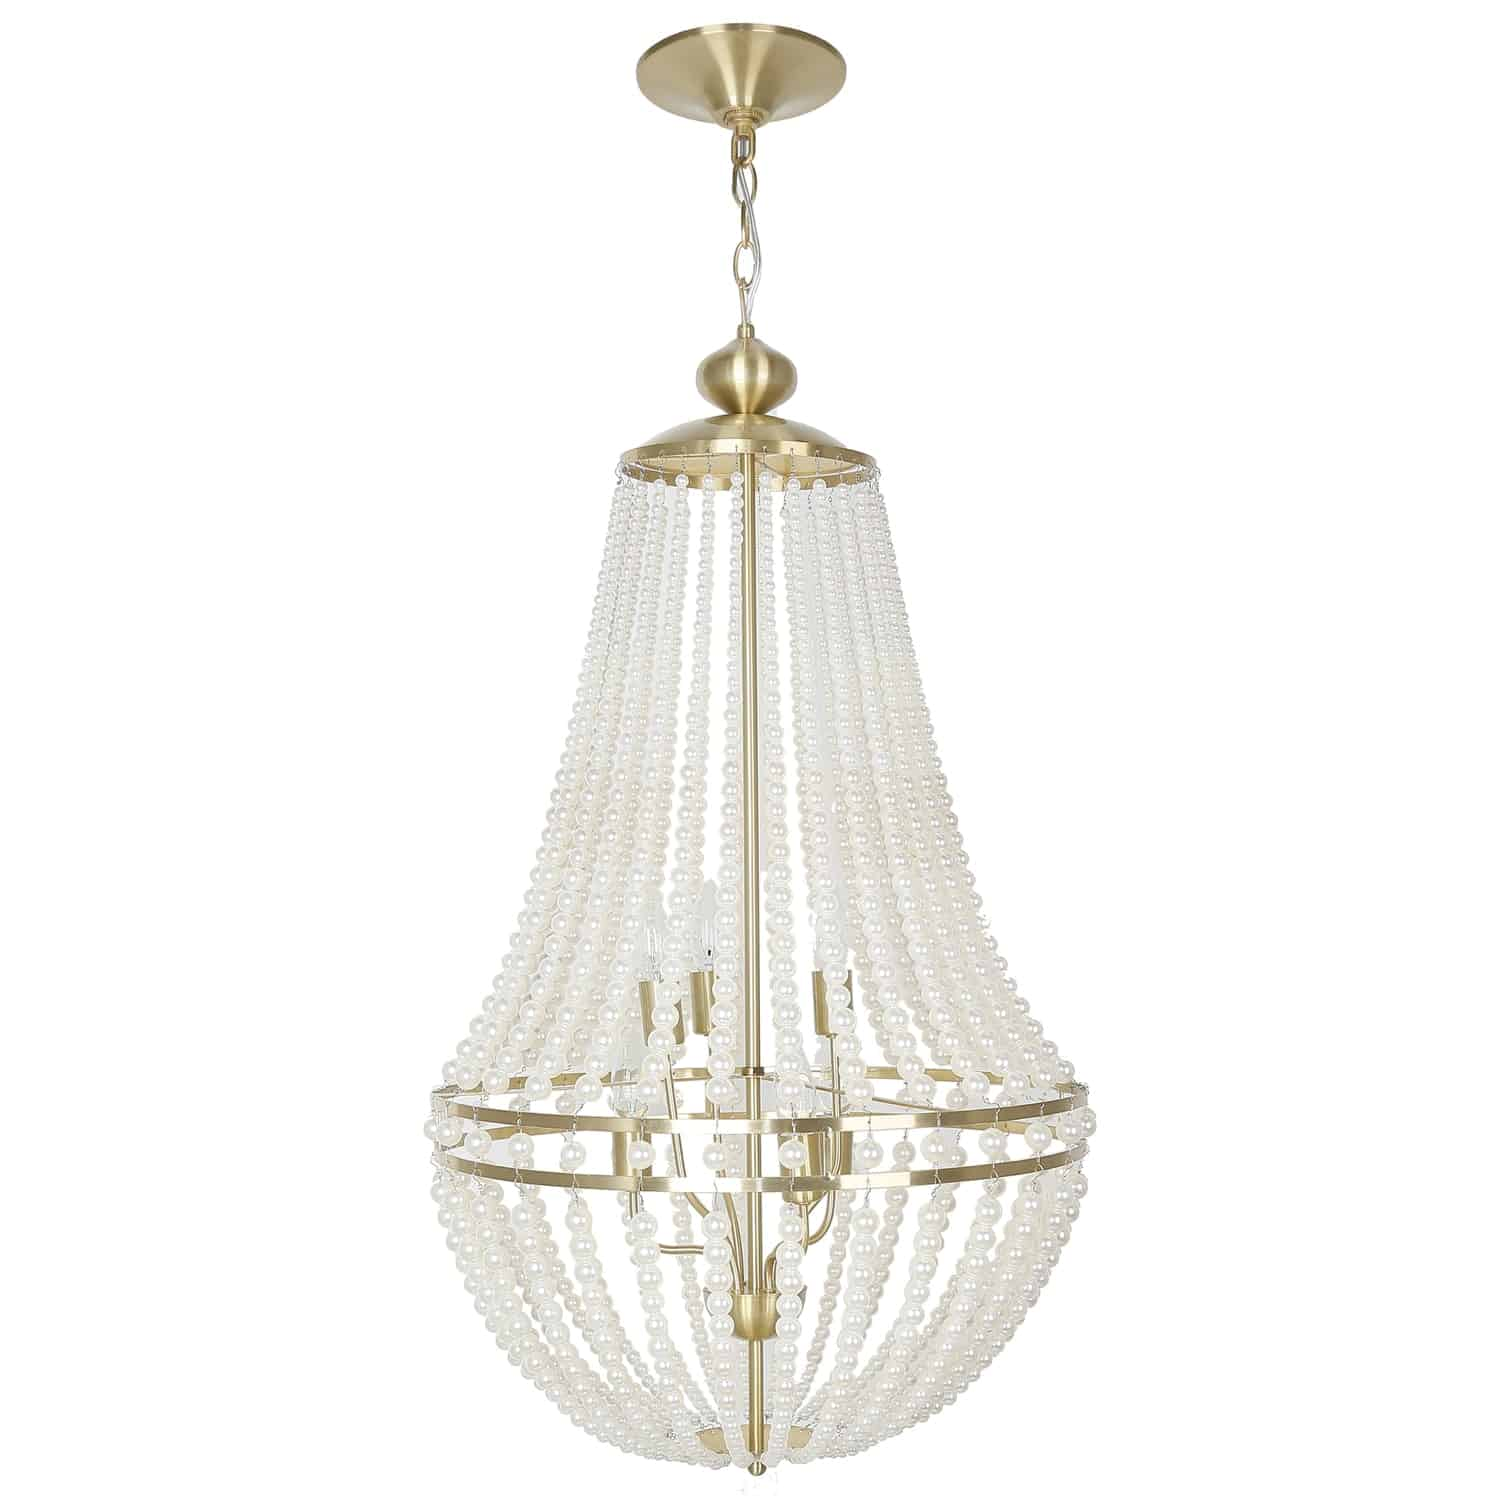 6 Light Incandescent Chandelier Aged Brass Finish with Pearls